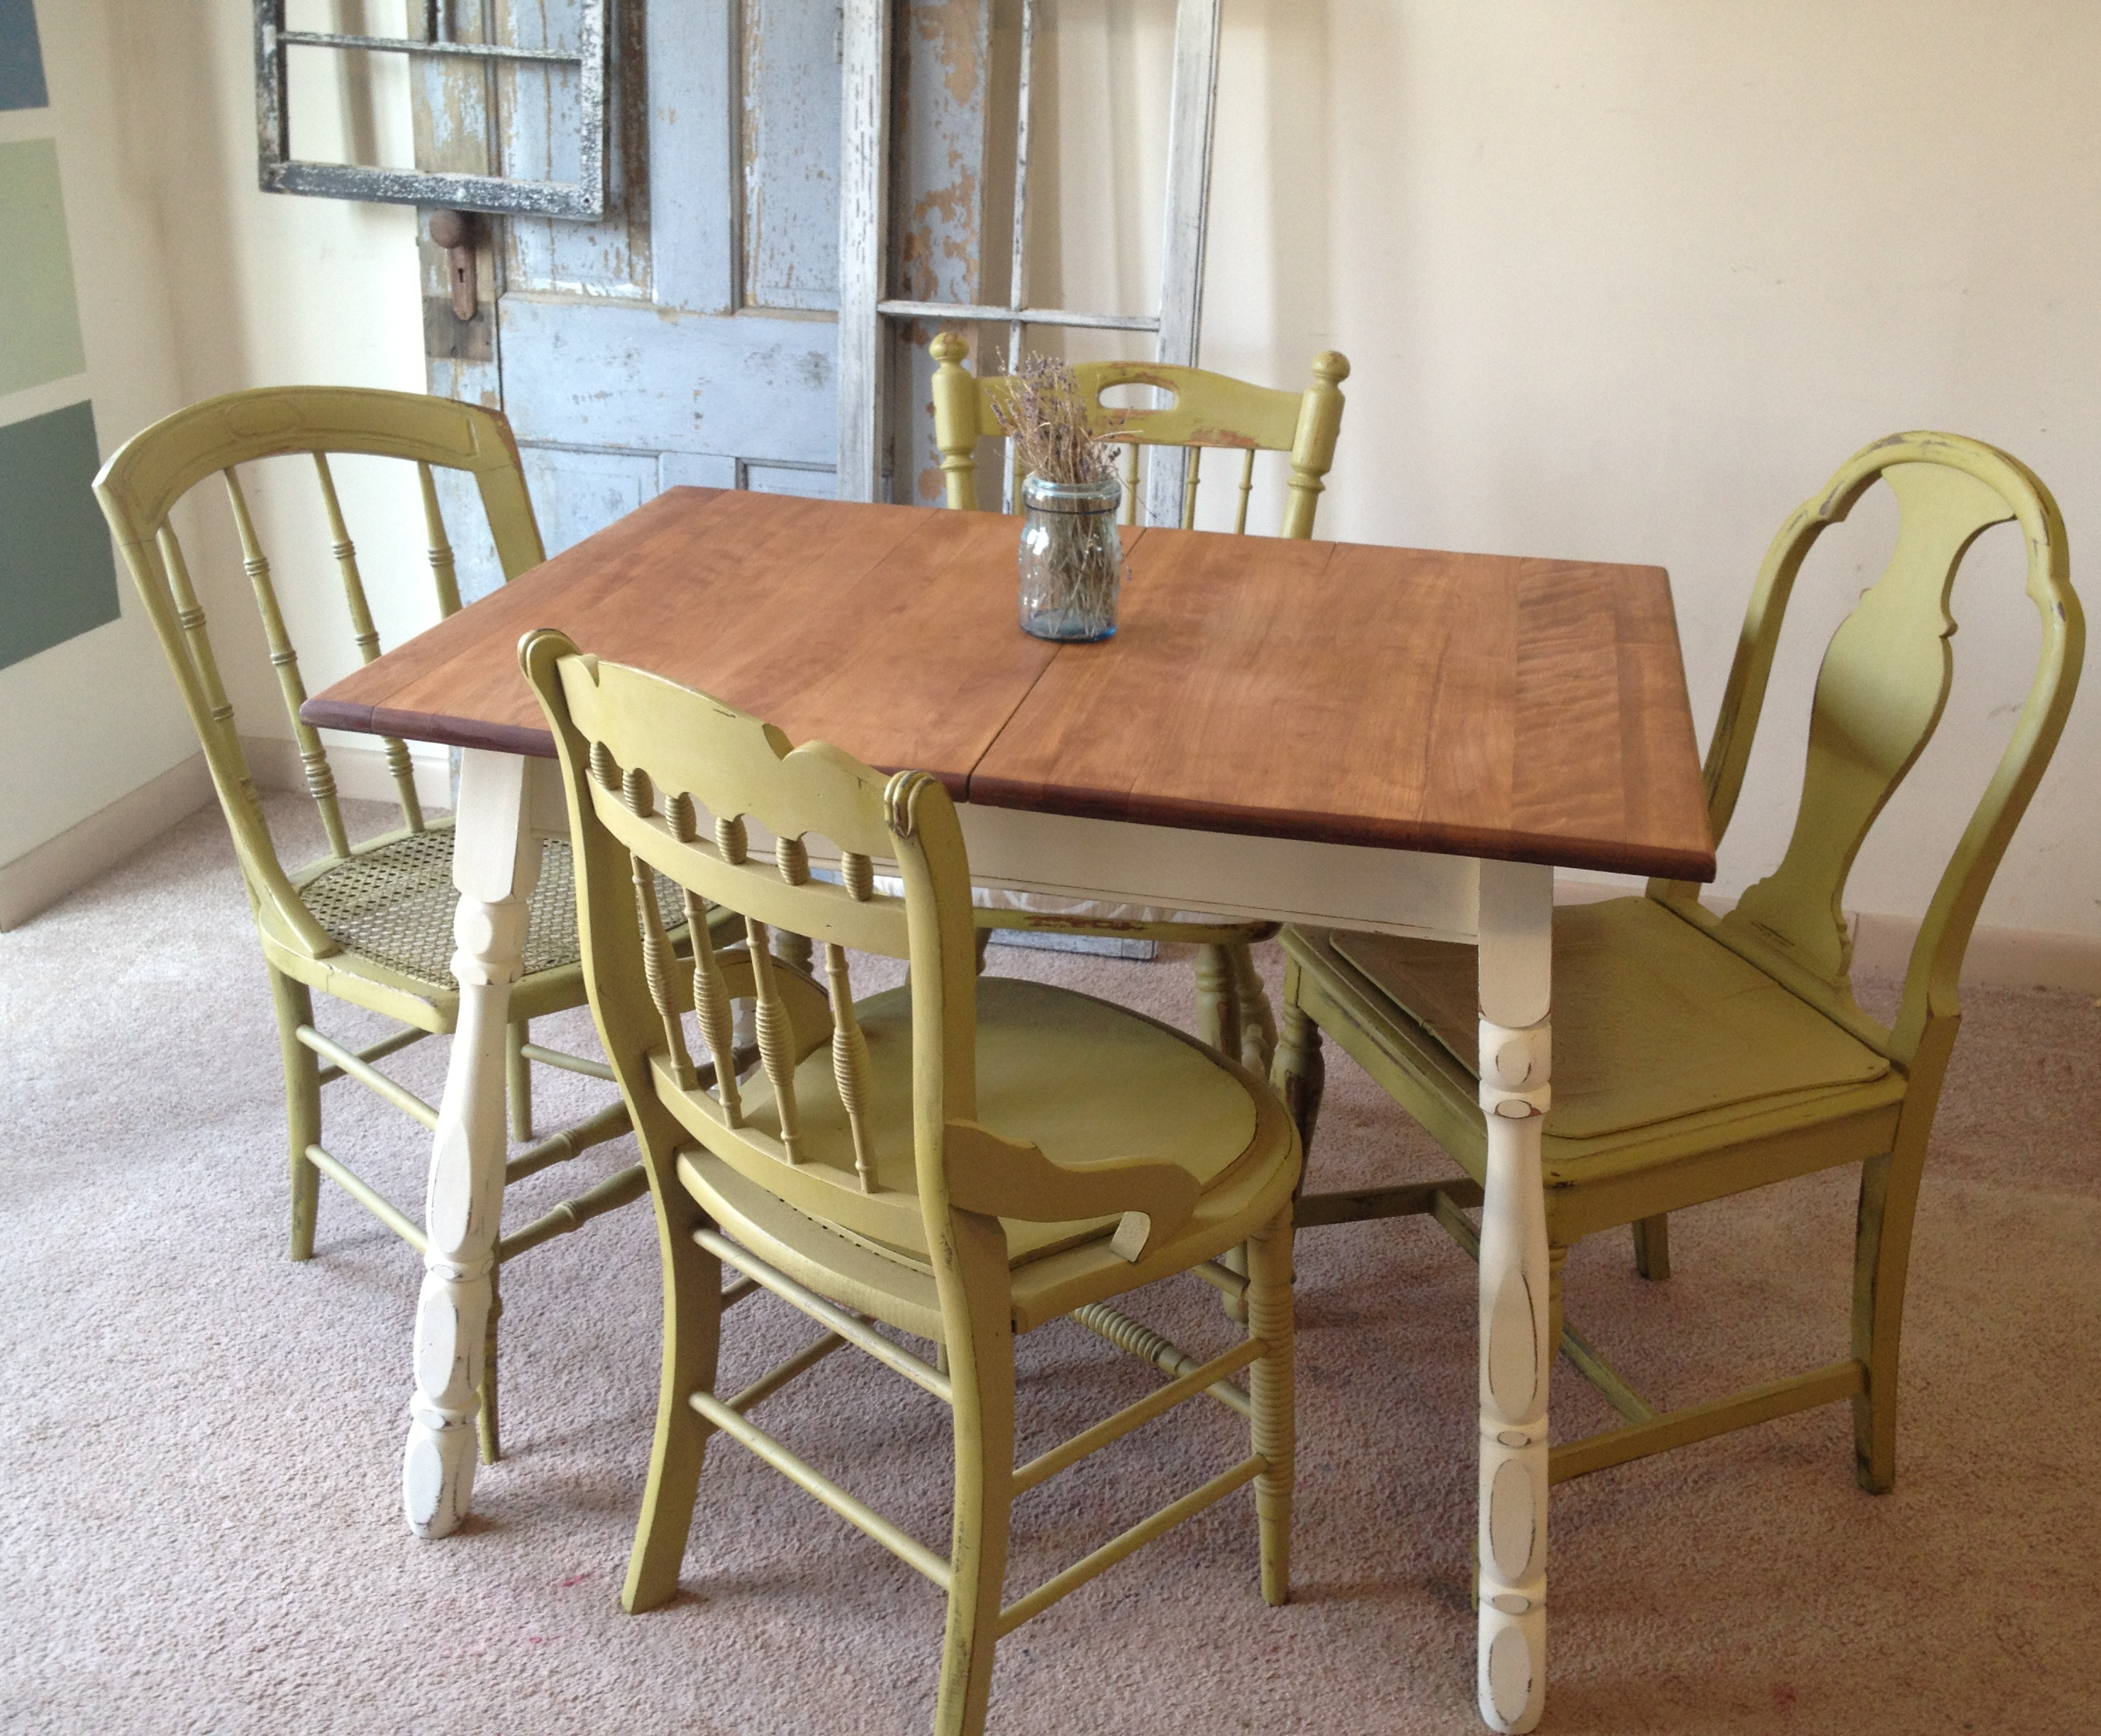 Small kitchen table and chairs Photo - 1